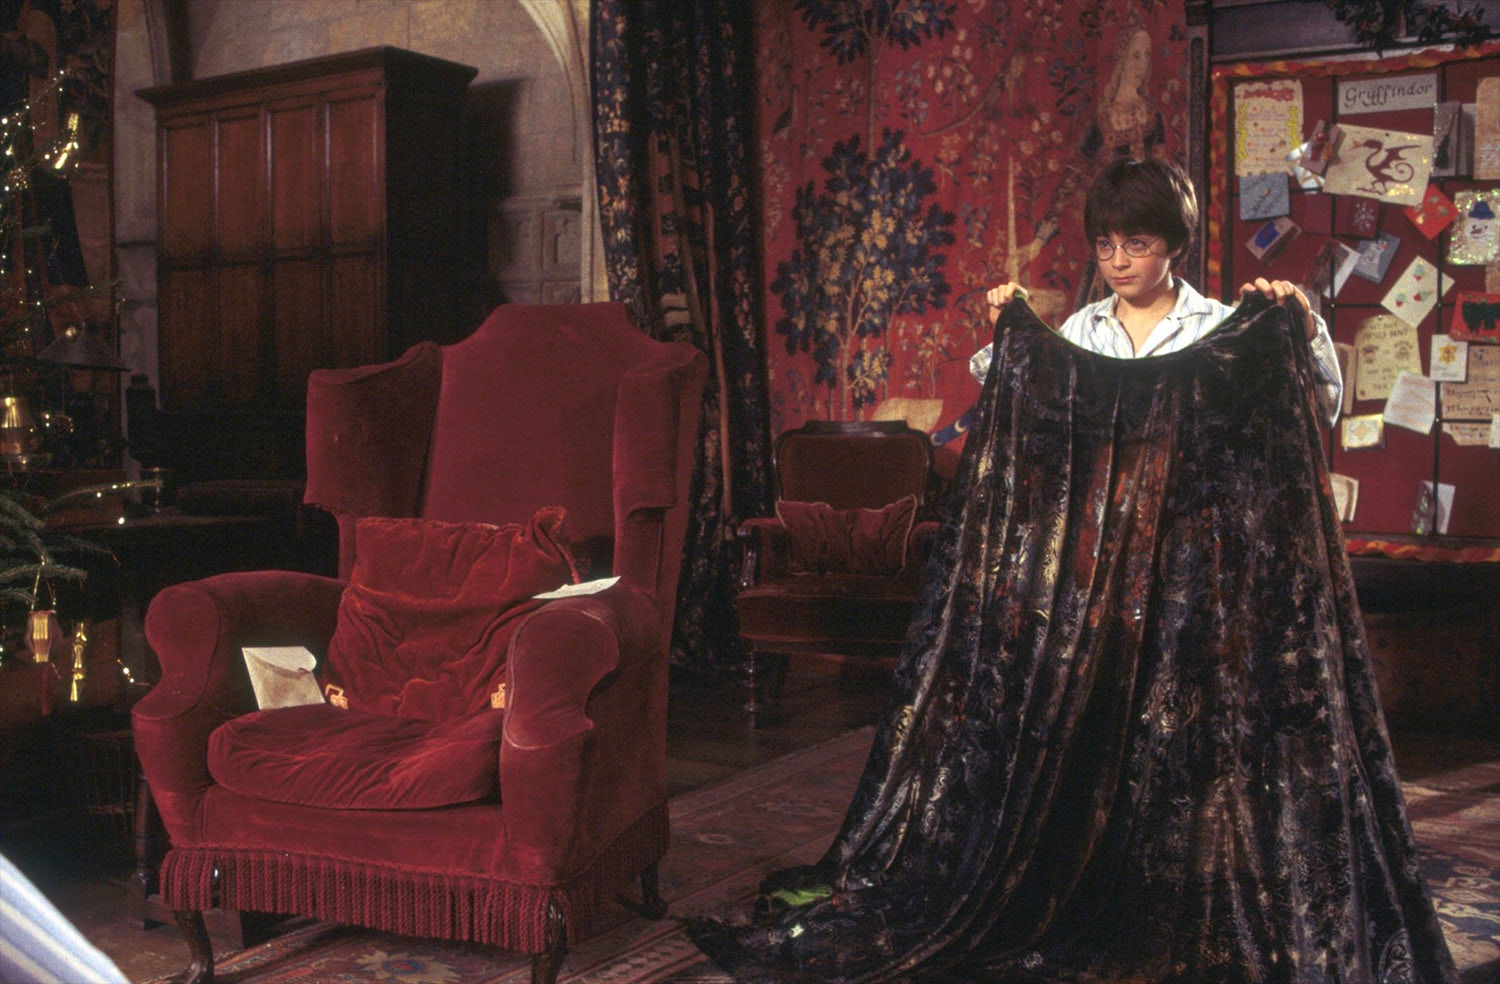 Harry and the invisibility cloak